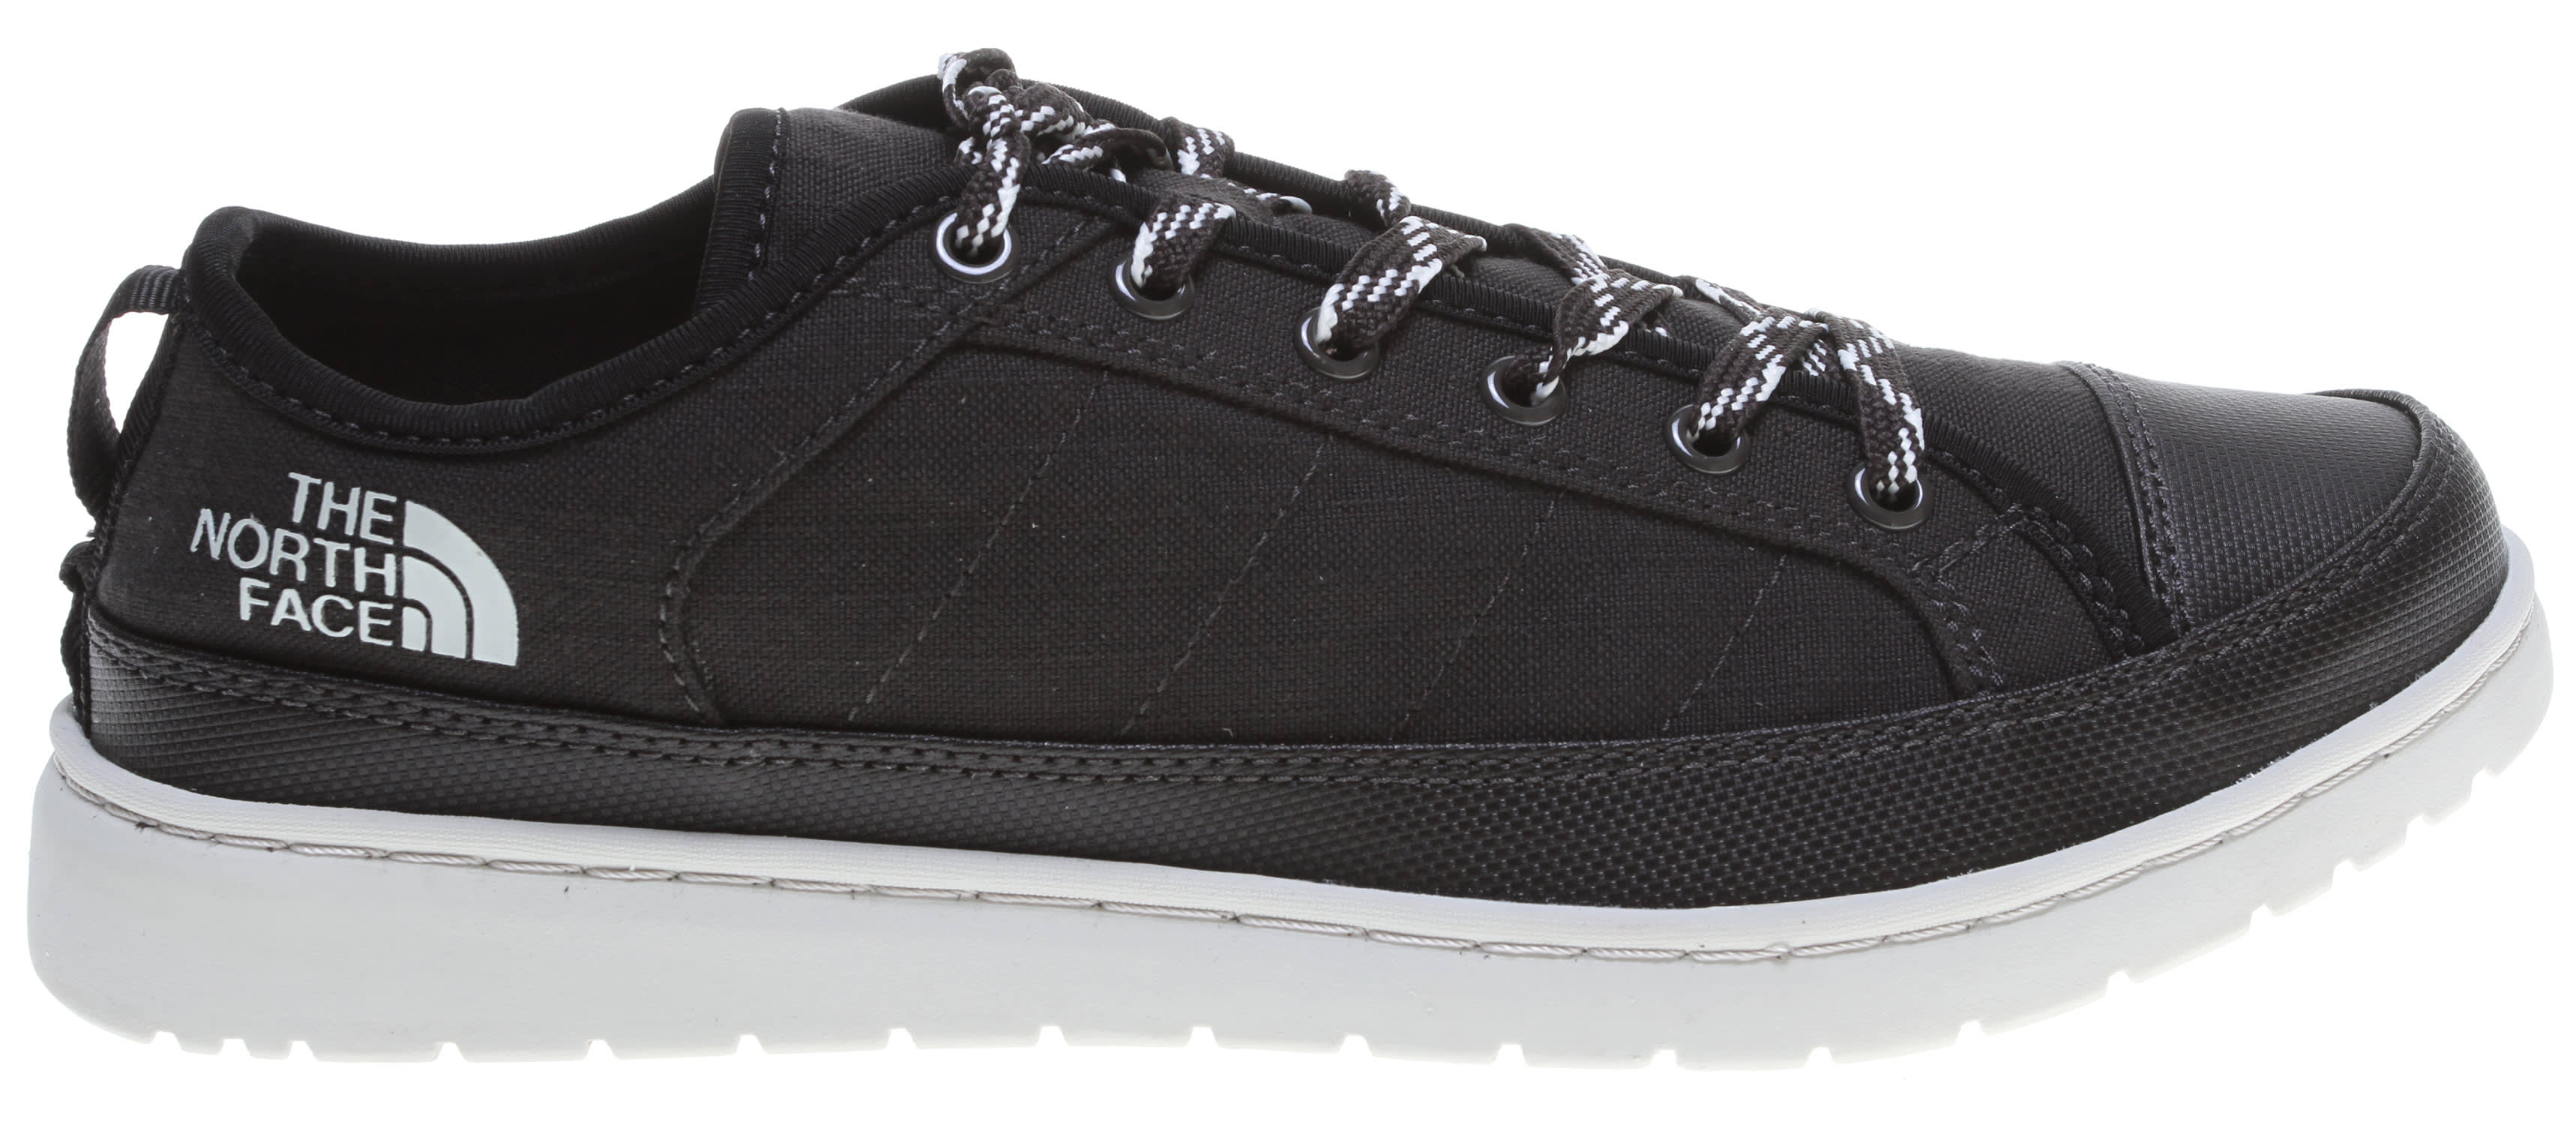 The North Face Men S Base Camp Lite Sneaker Casual Shoes